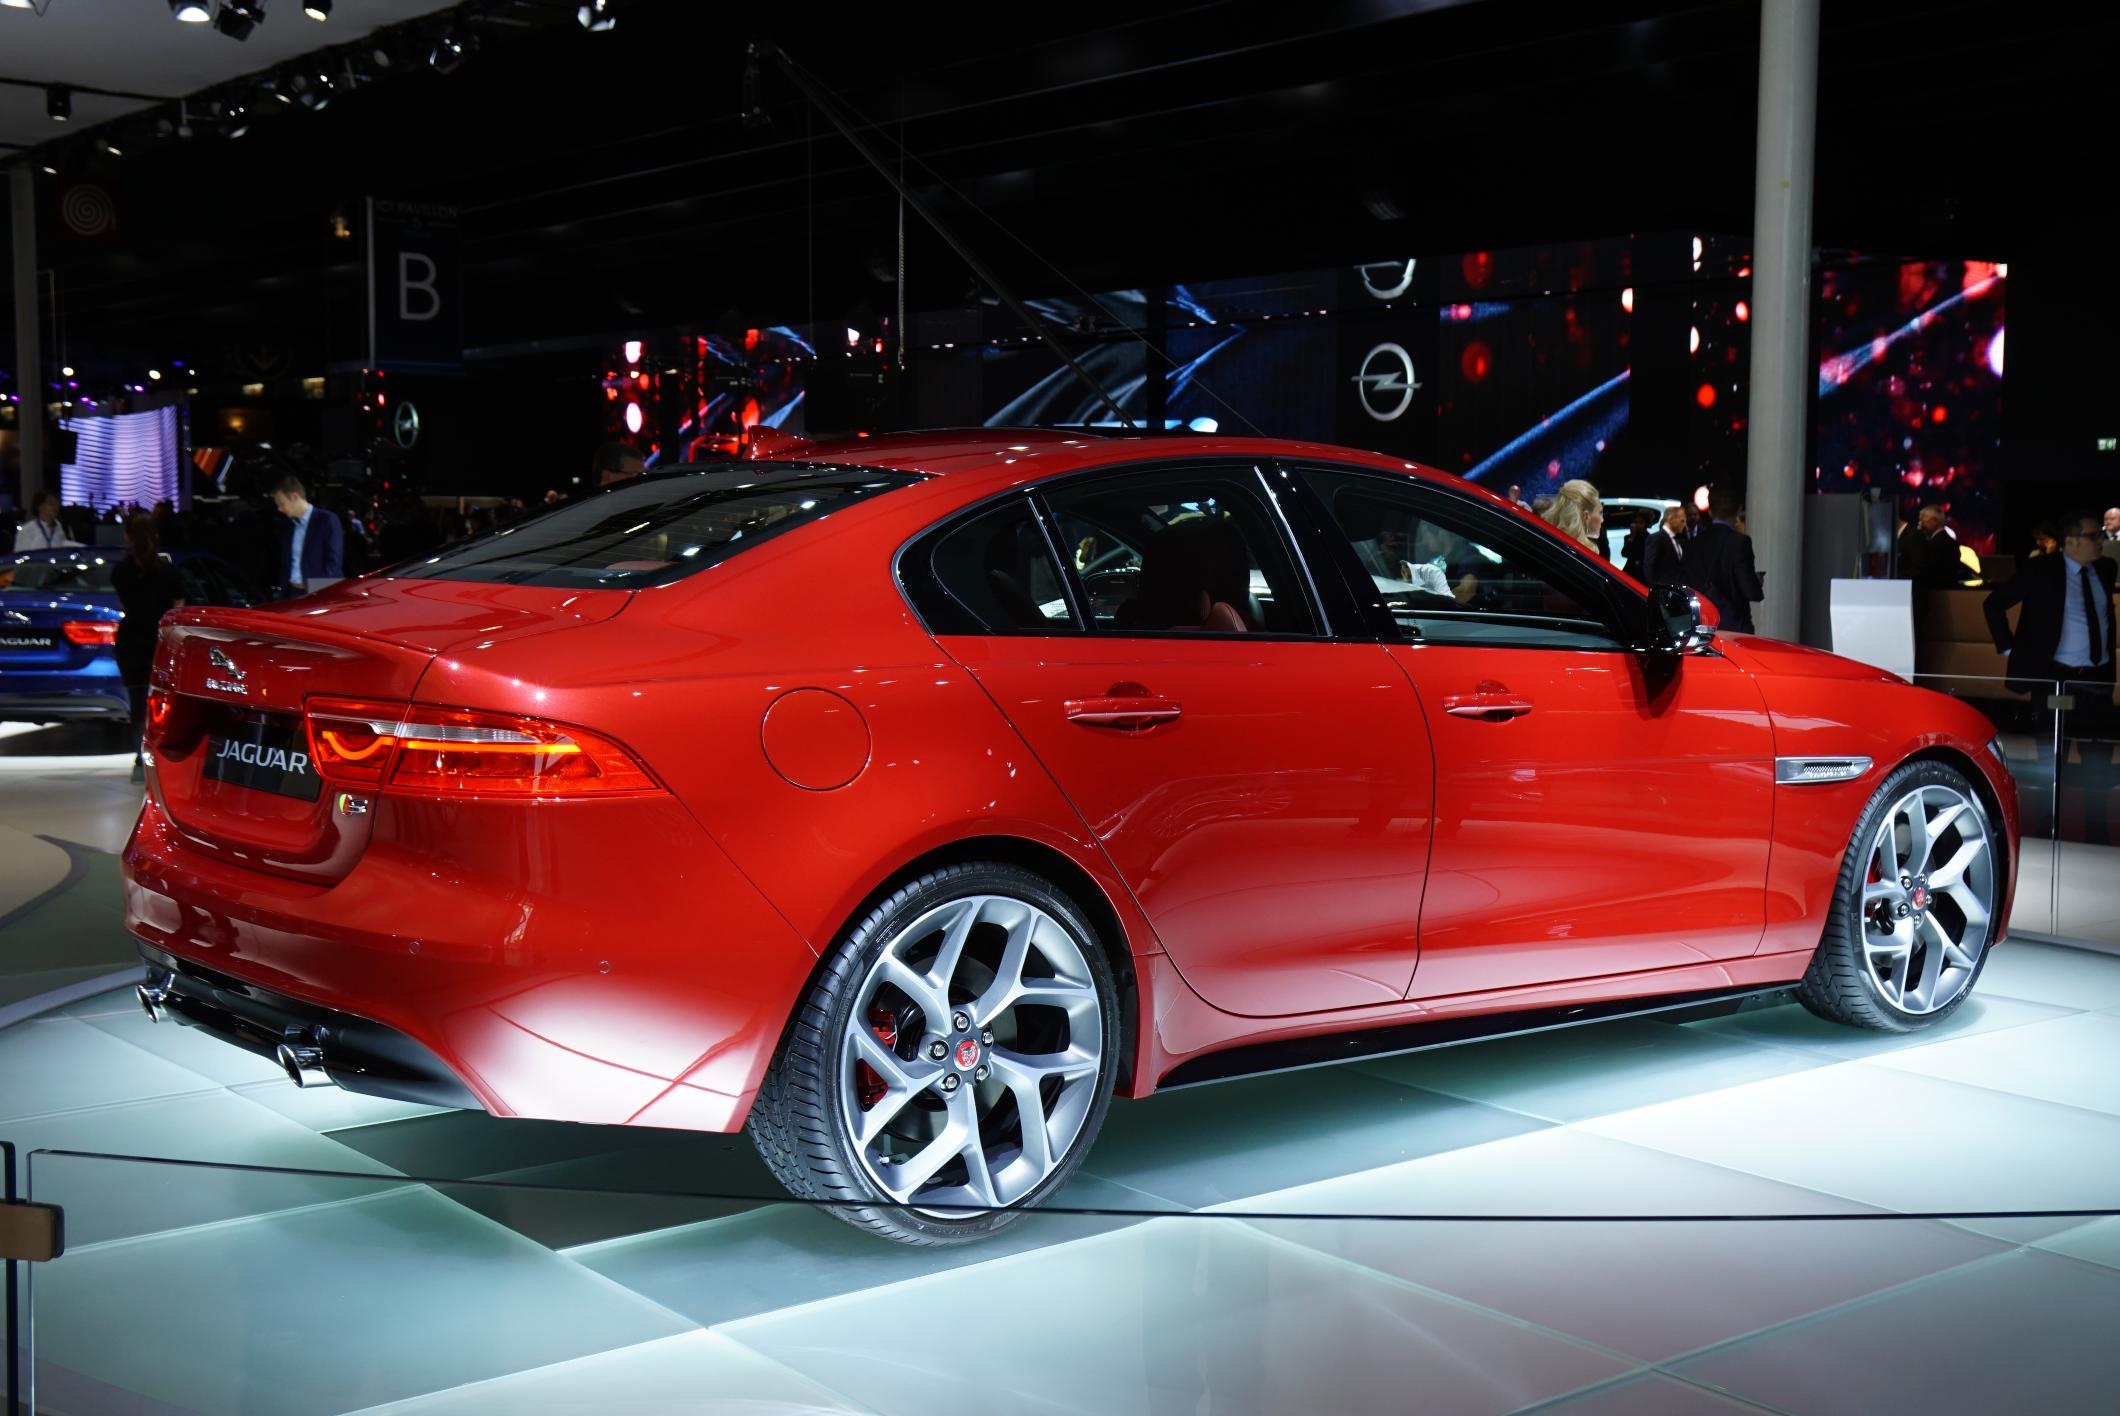 2016 Jaguar XE photo - 1